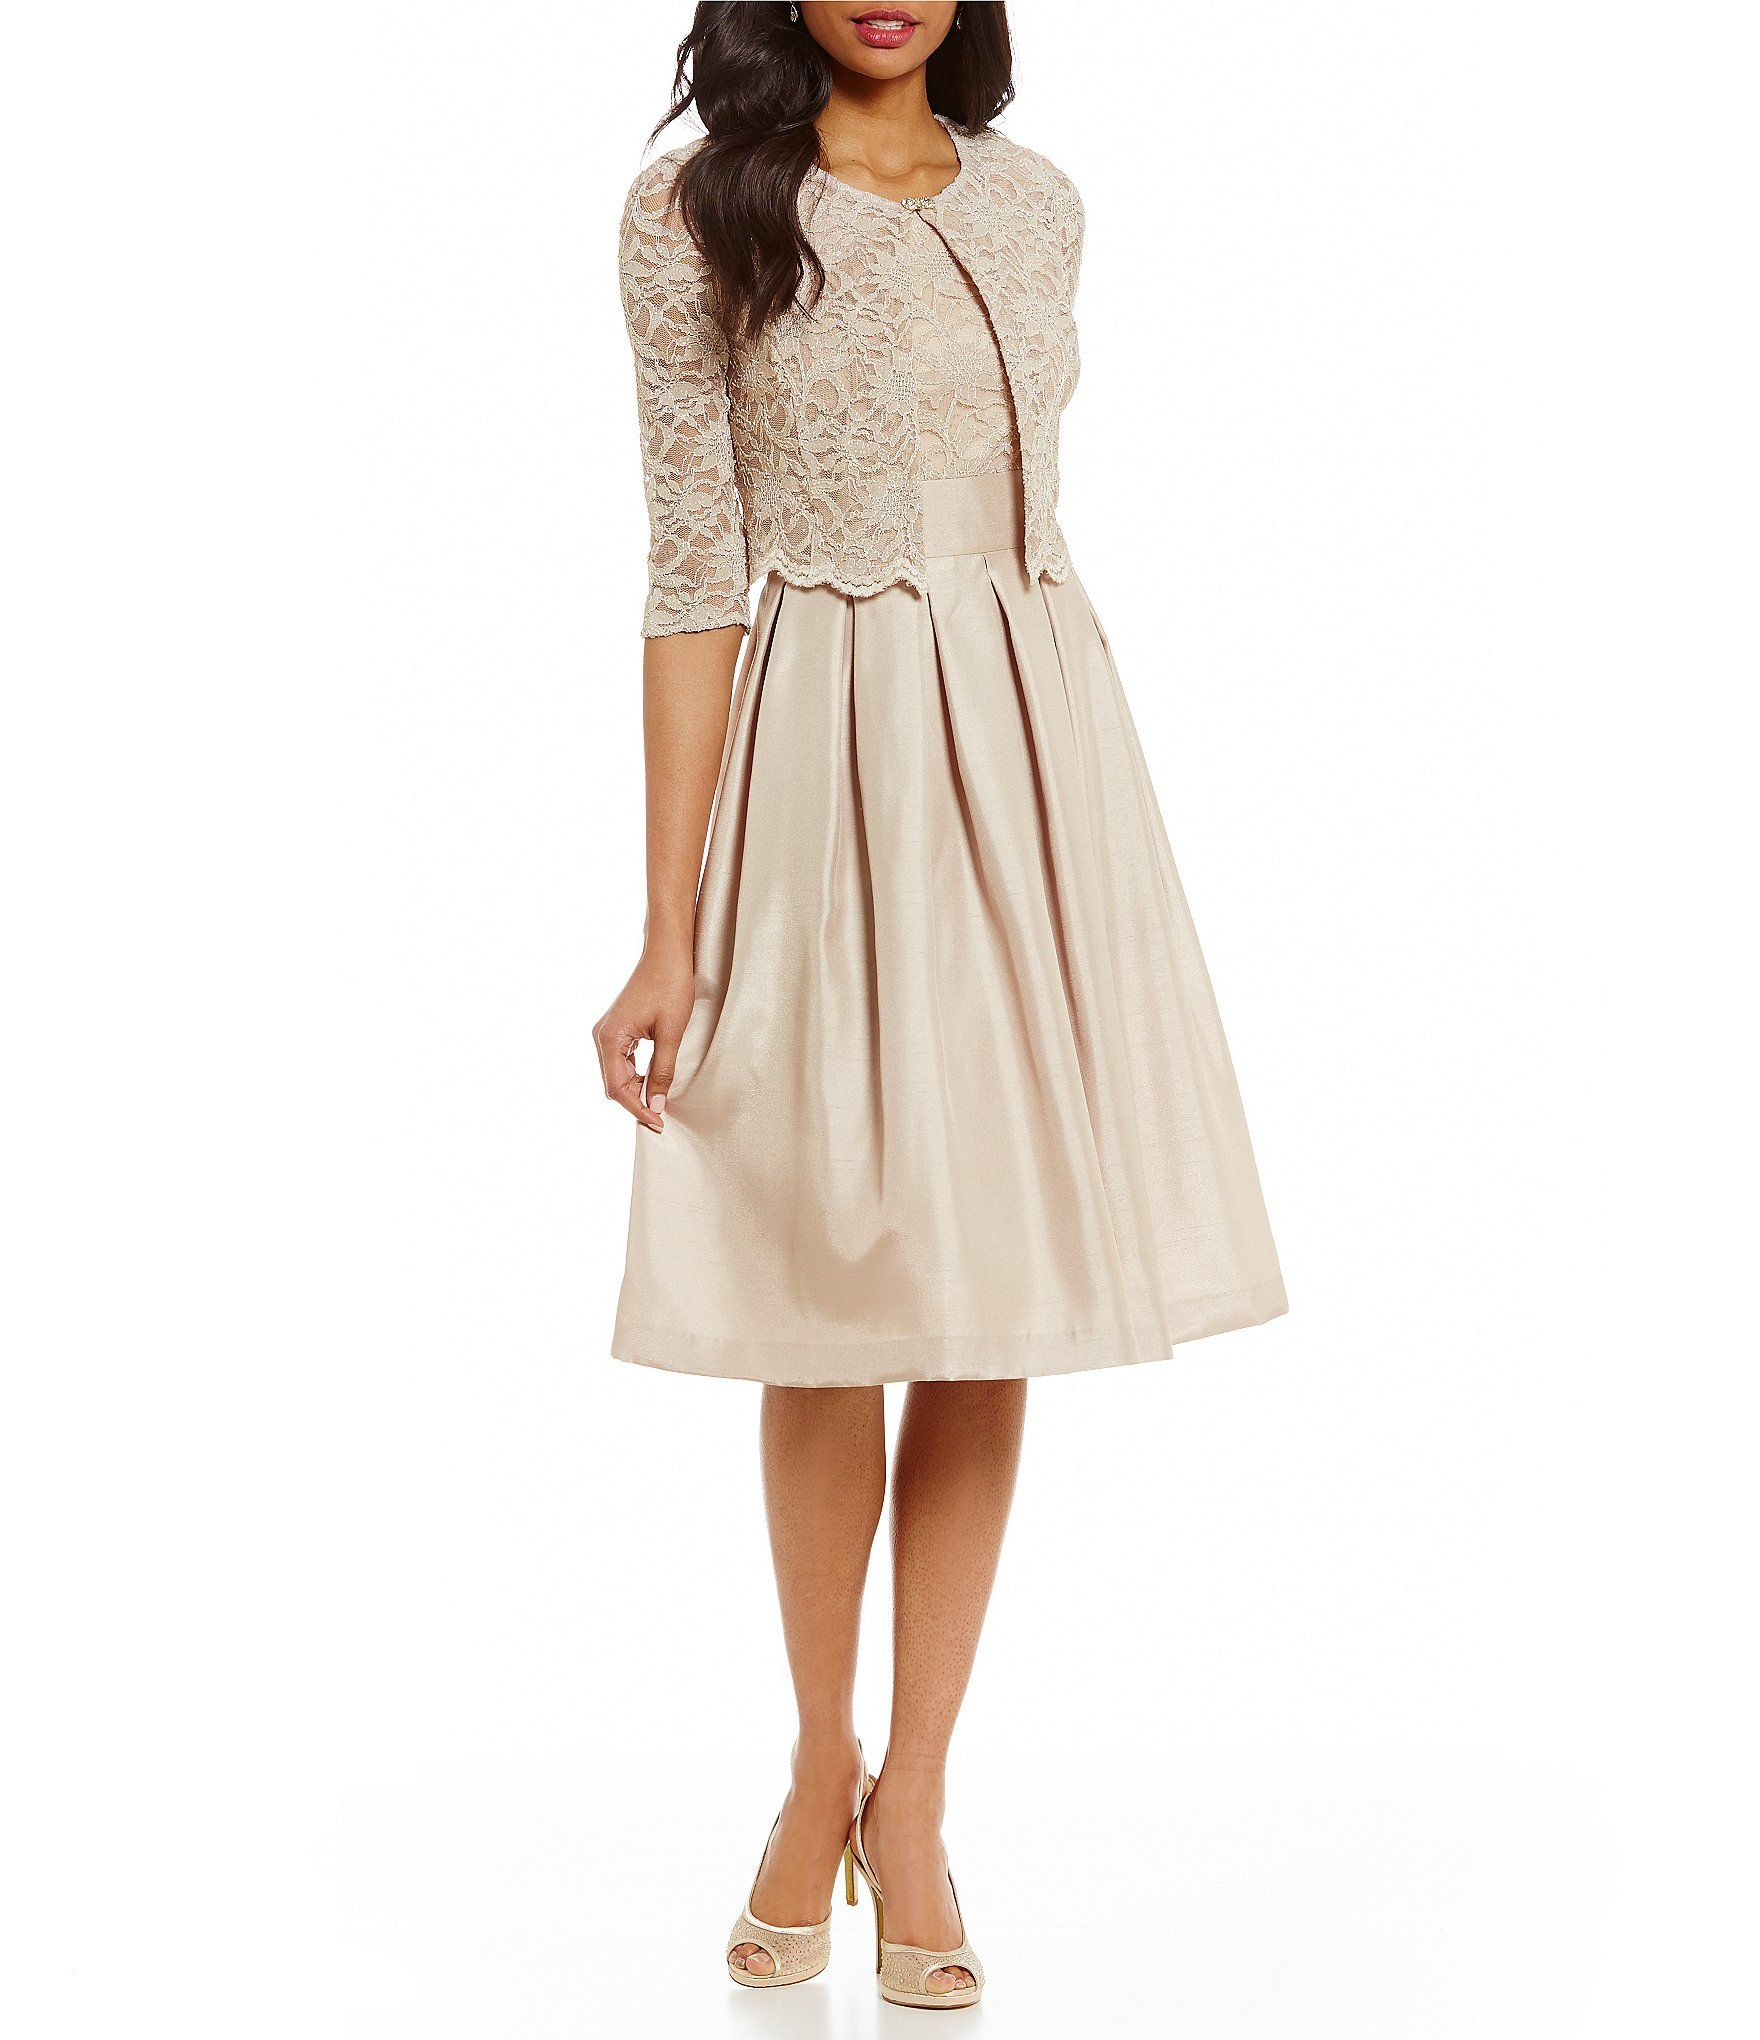 a69a7744b2 Shop for Jessica Howard Petite Lace 2-Piece Jacket Dress at Dillards.com.  Visit Dillards.com to find clothing